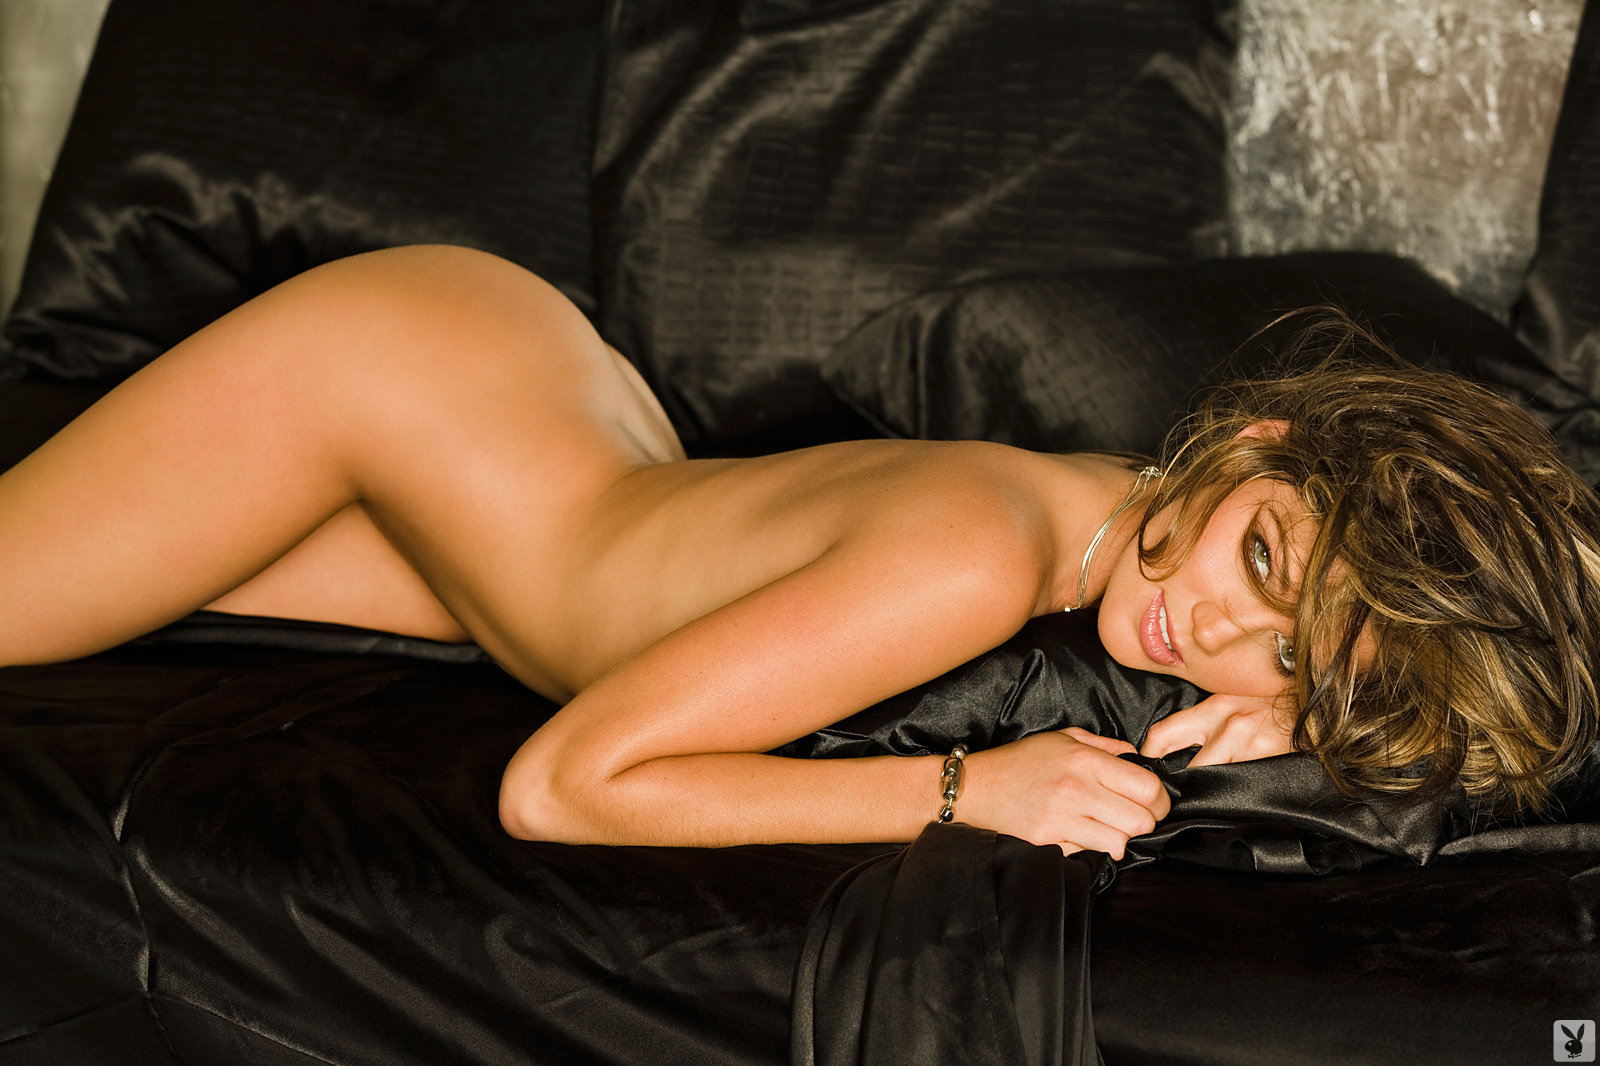 Playmate Exclusive May 2009 Crystal Mccahill0013